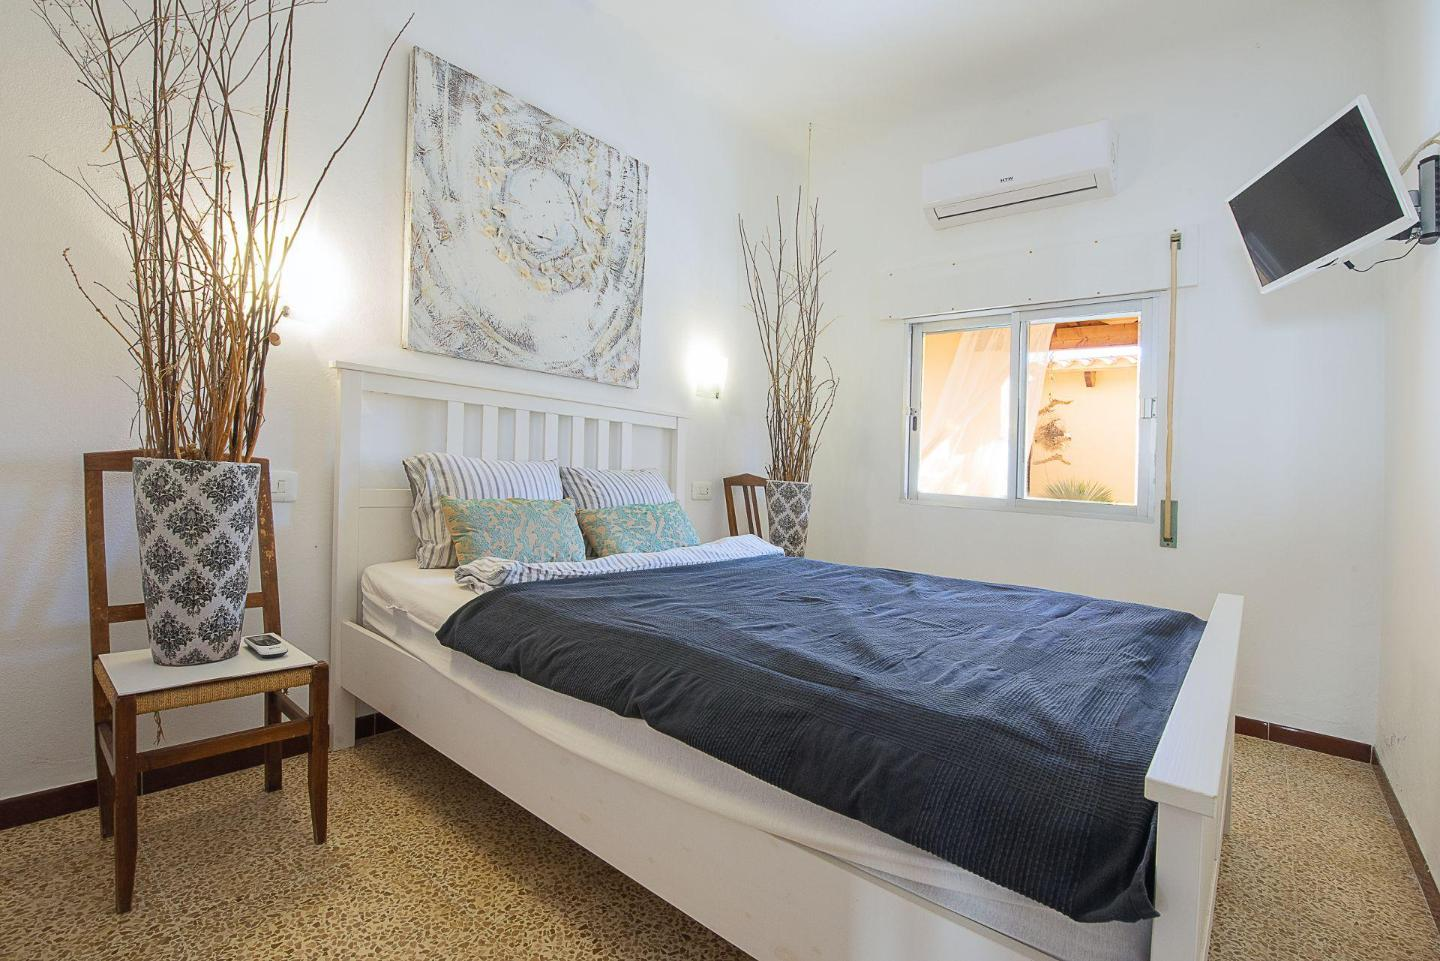 Chalet Arte In Santanyí Mallorca Southeast For 5 Persons To Rent